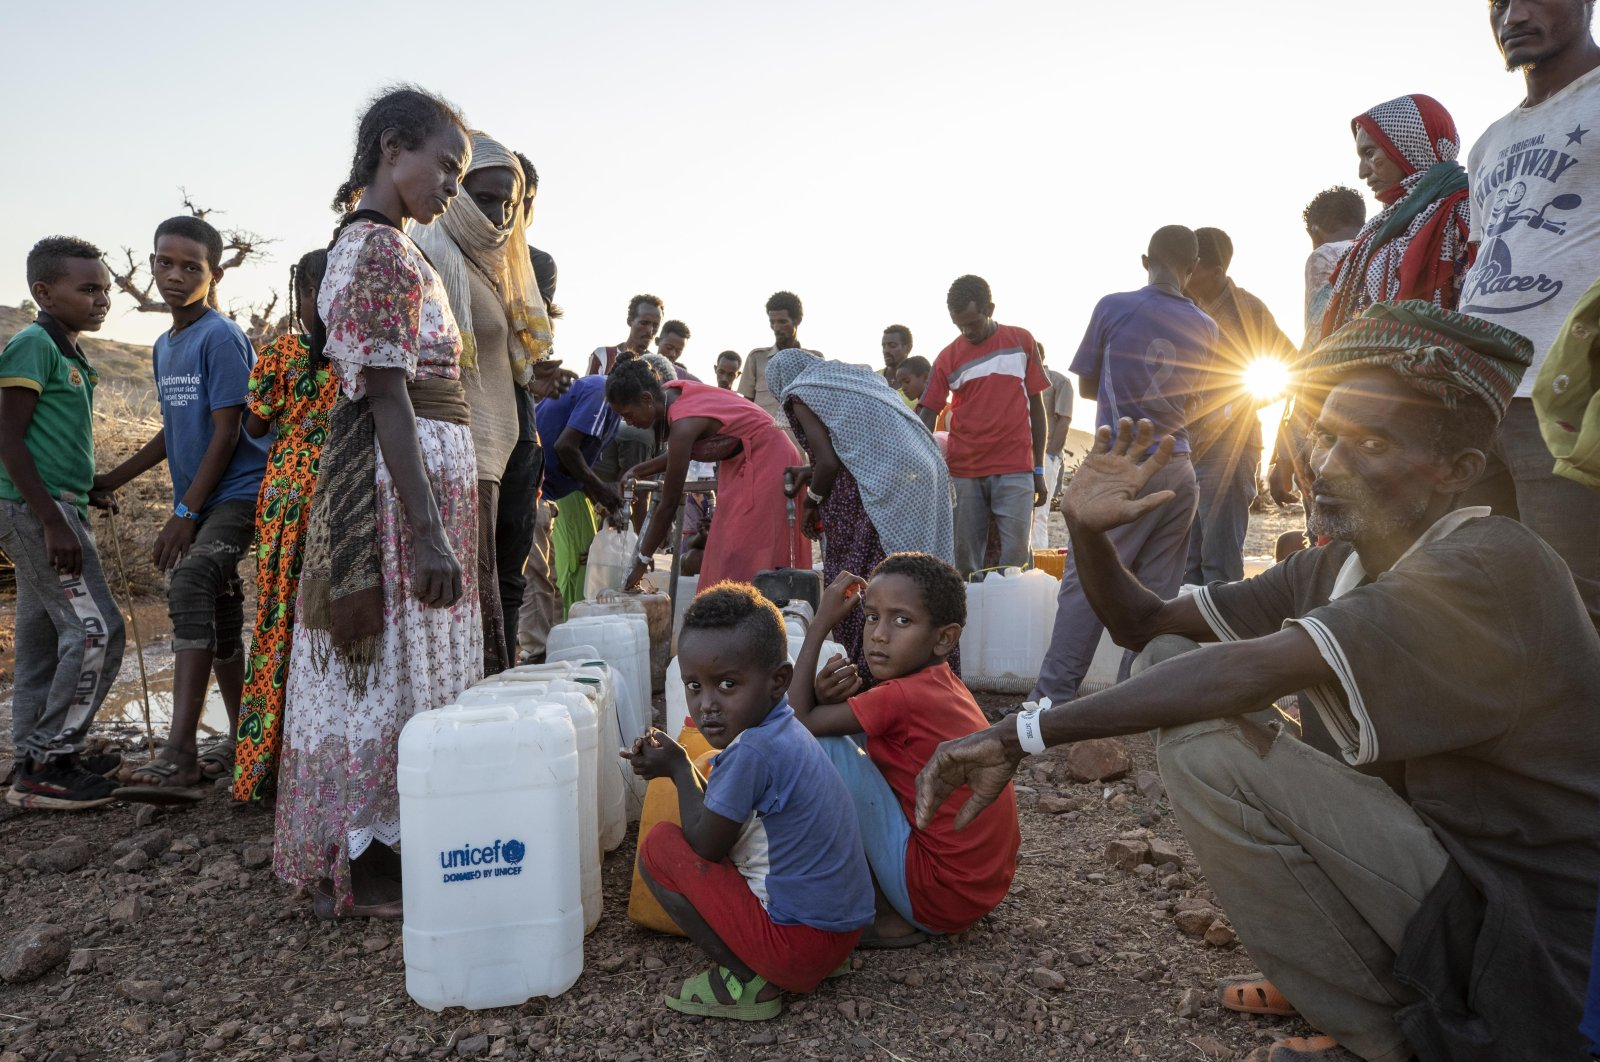 Tigray women and men who fled the conflict in Ethiopia's Tigray region, wait in line to pour water into gallons, at Umm Rakouba refugee camp in Qadarif, eastern Sudan, Friday, Nov. 27, 2020. (AP Photo)